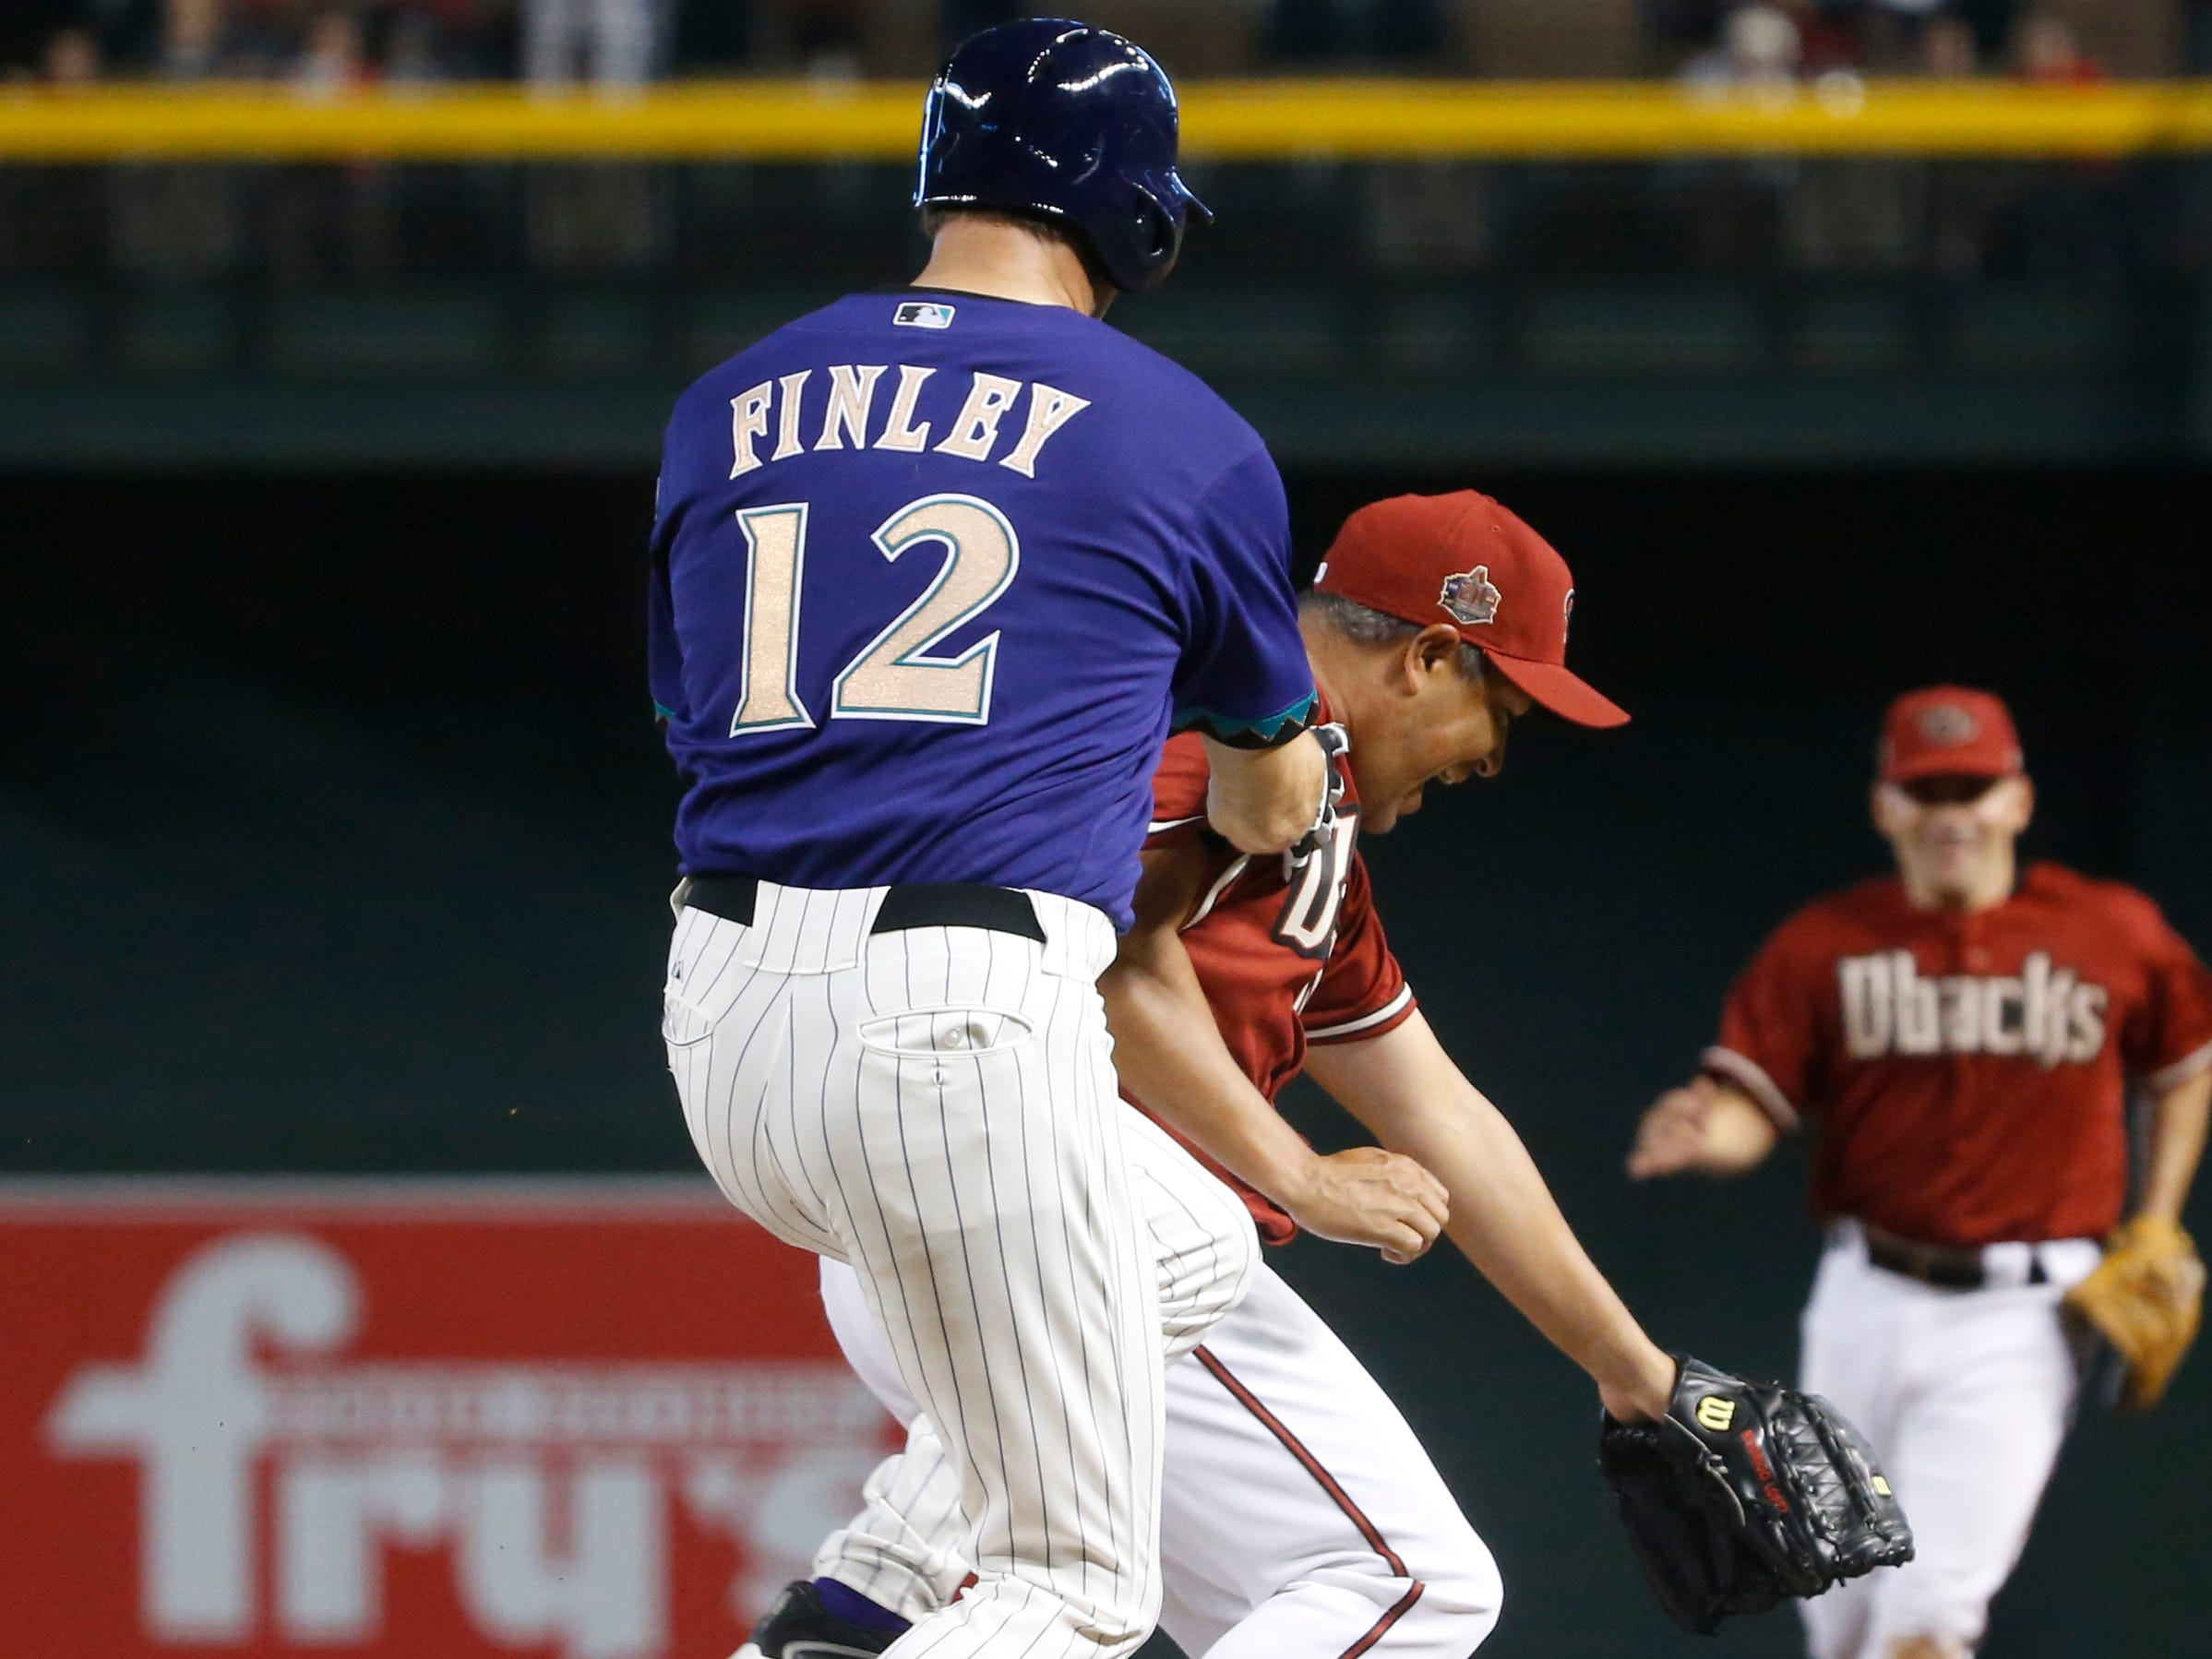 Diamondbacks Purple team's Steve Finley (12) runs into the back of Red team's Augie Ojeda during the Generations Diamondbacks Alumni game at Chase Field in Phoenix, Ariz. on Aug. 4, 2018.